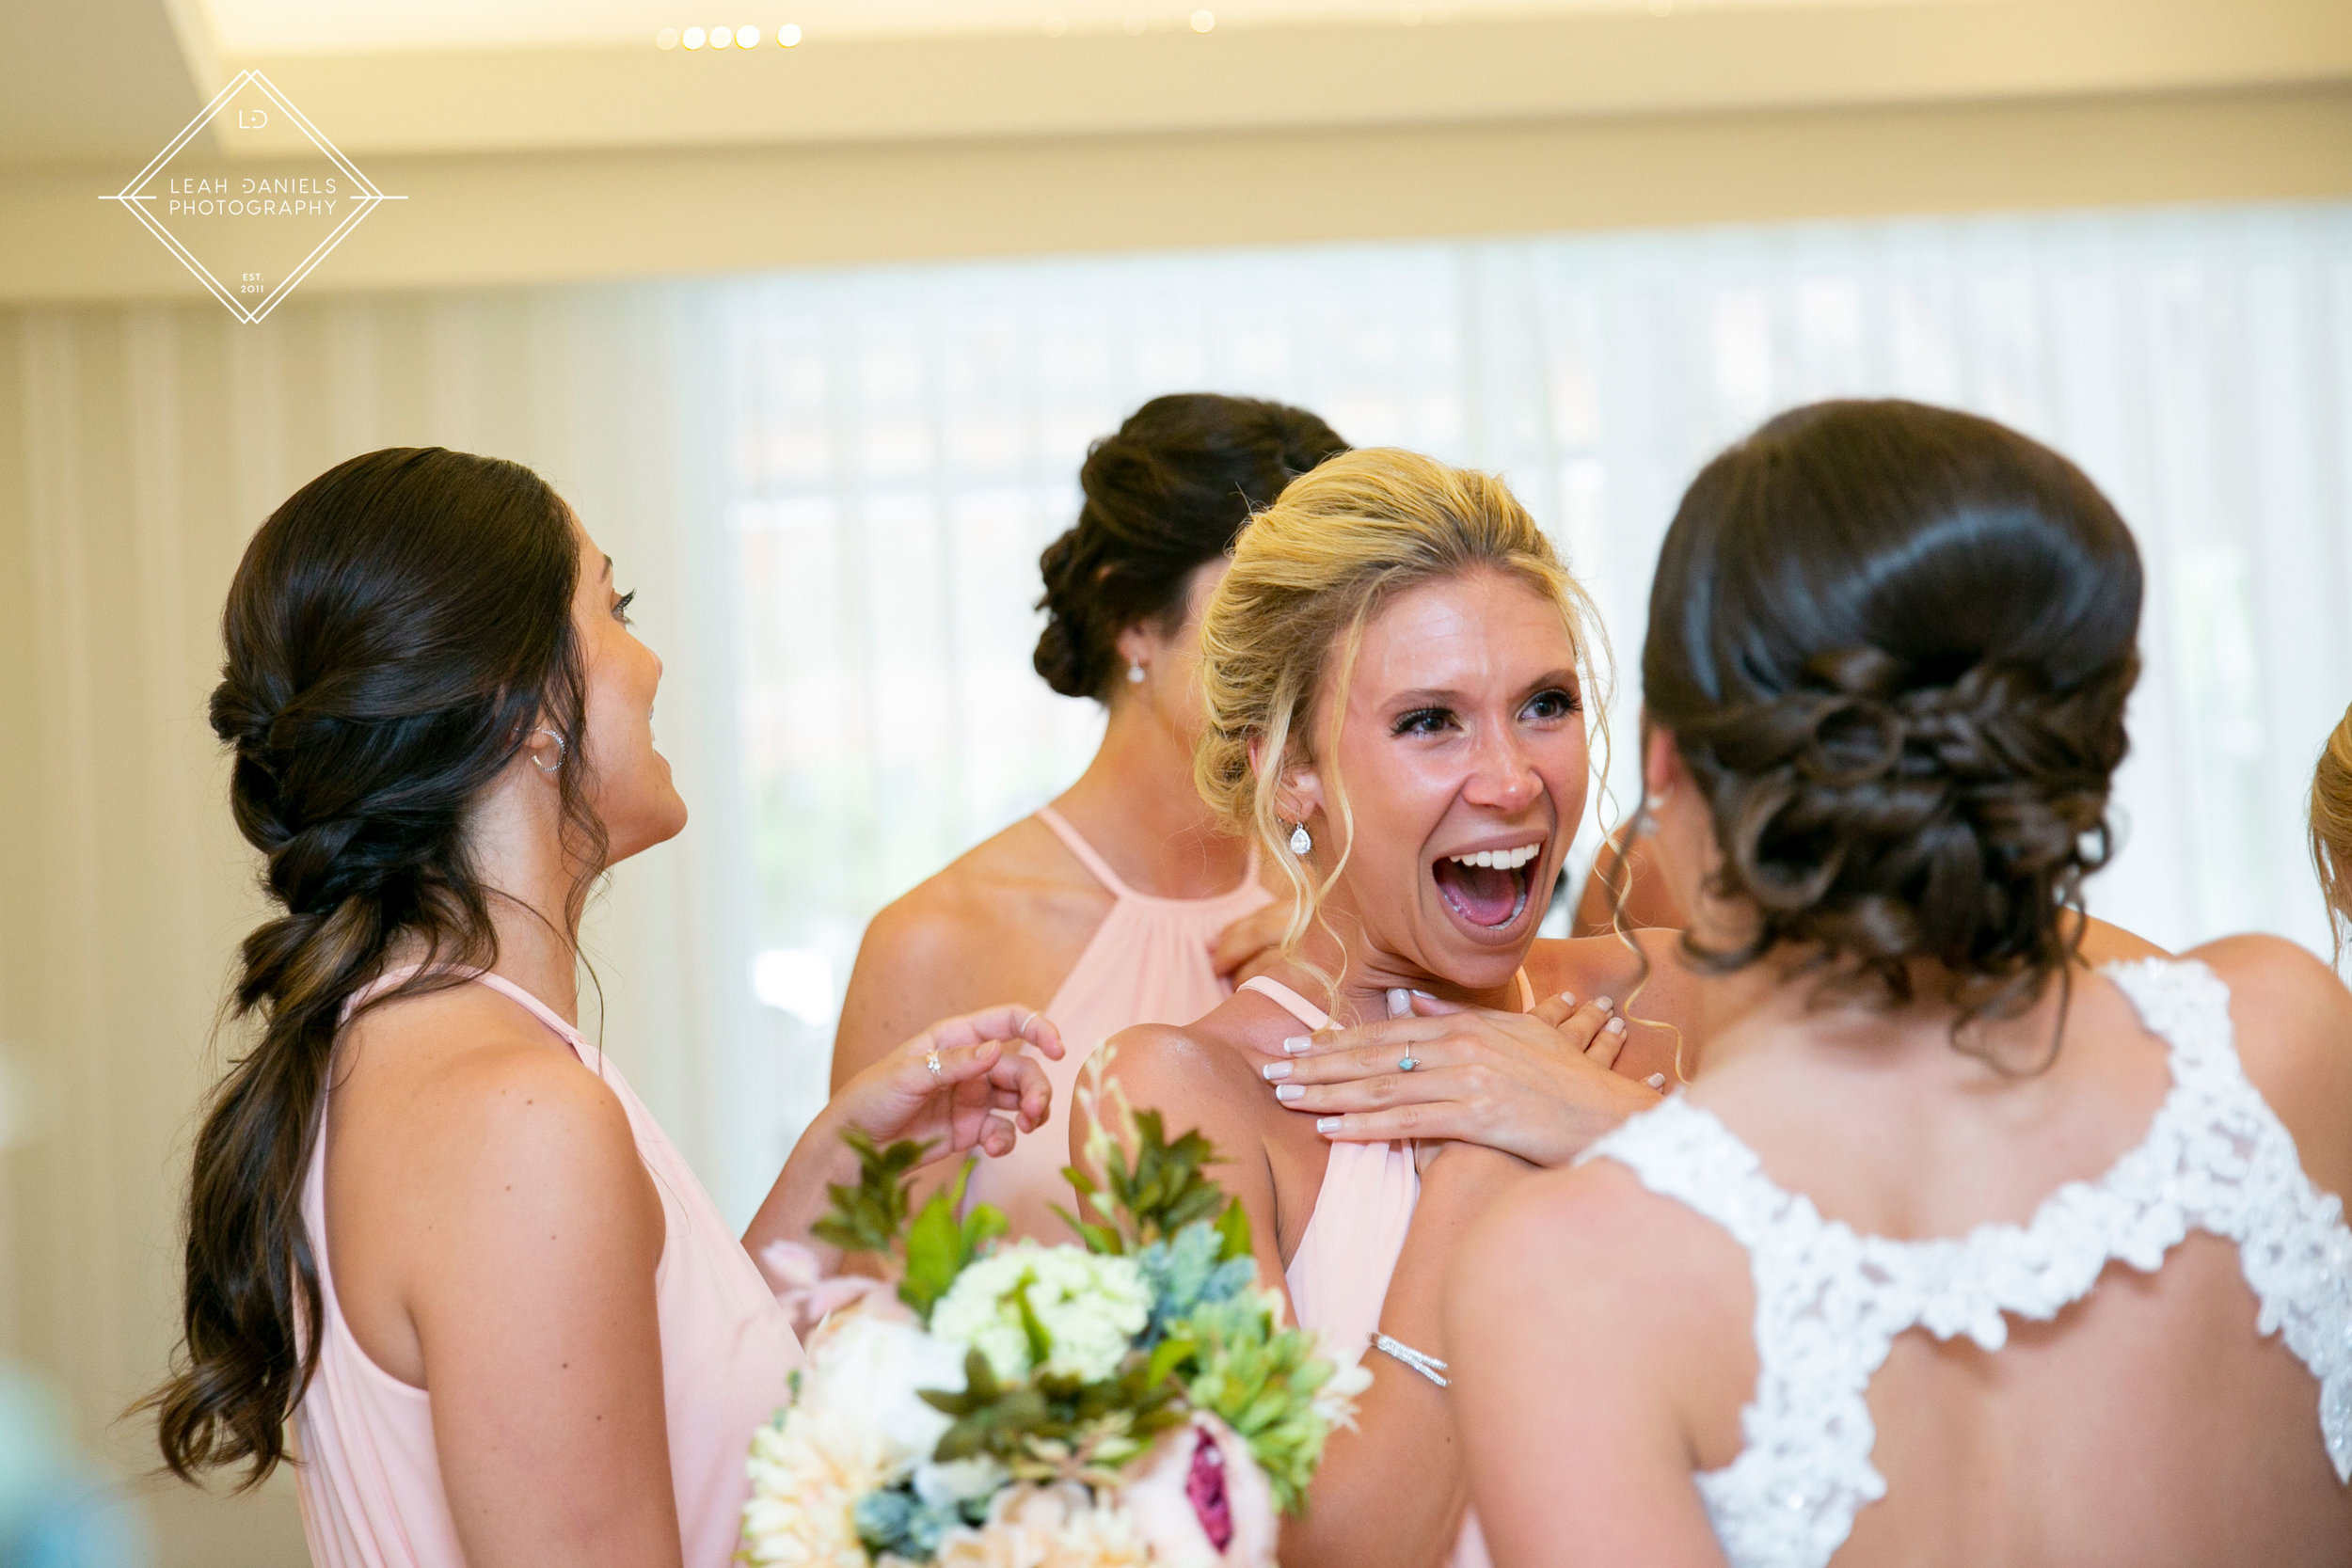 Your friends should look at you like this on your wedding day <3